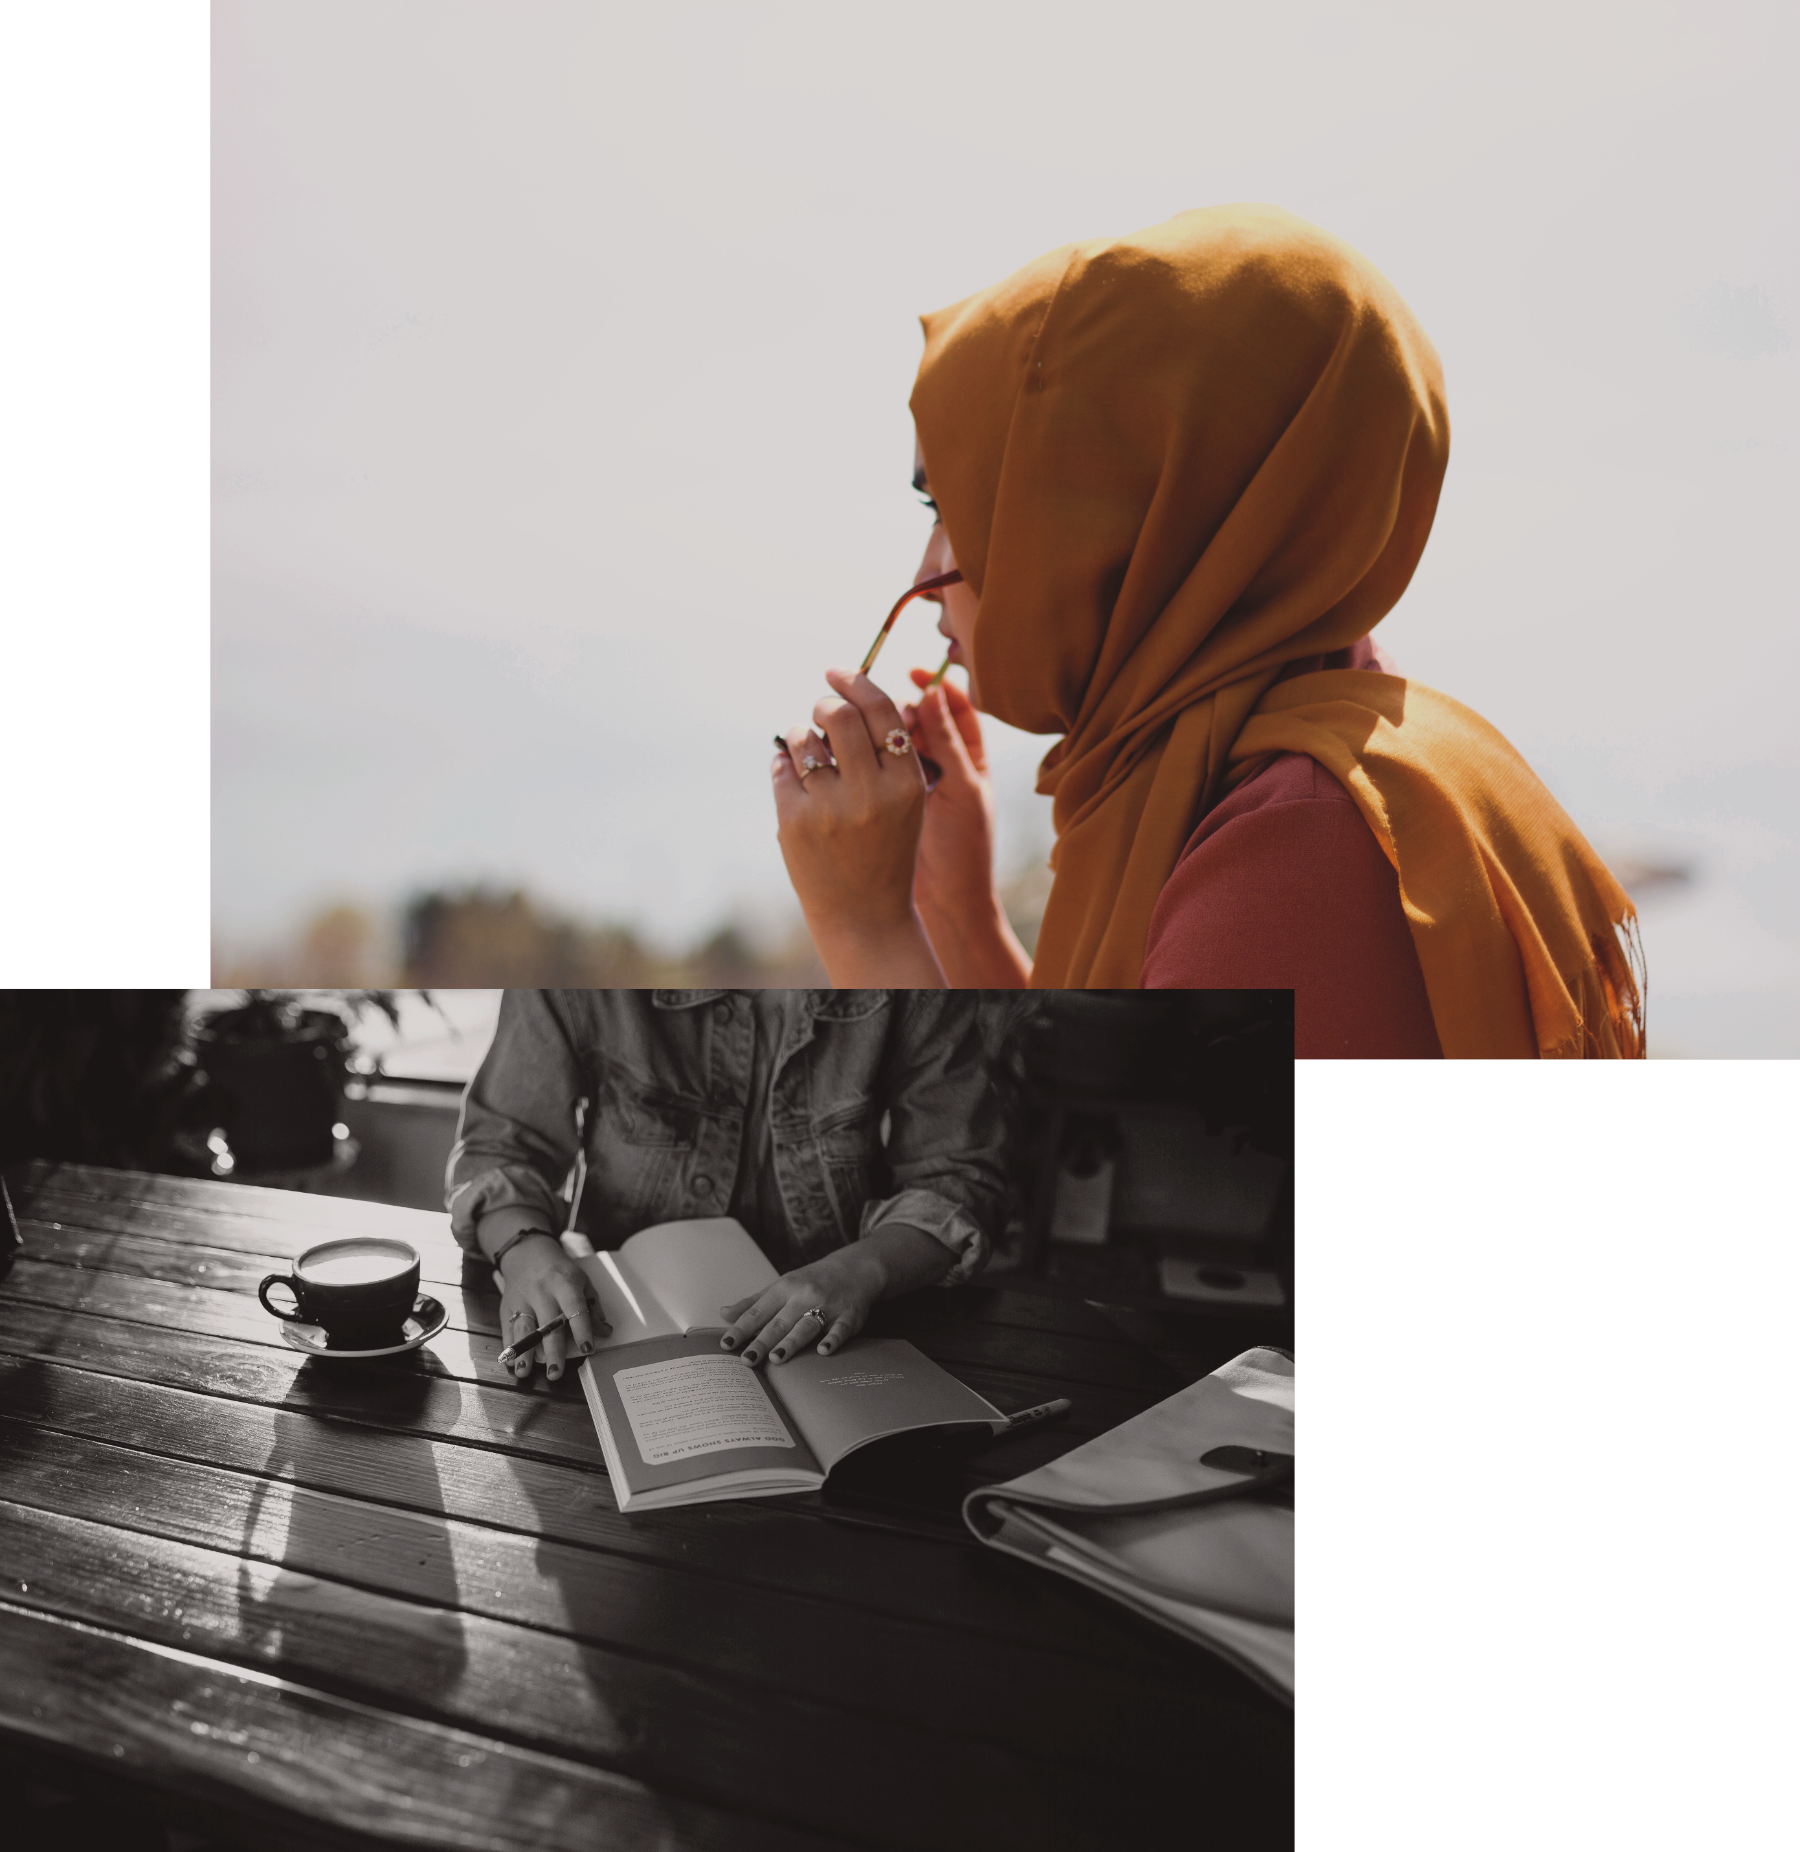 15-hijab-photo-02.png